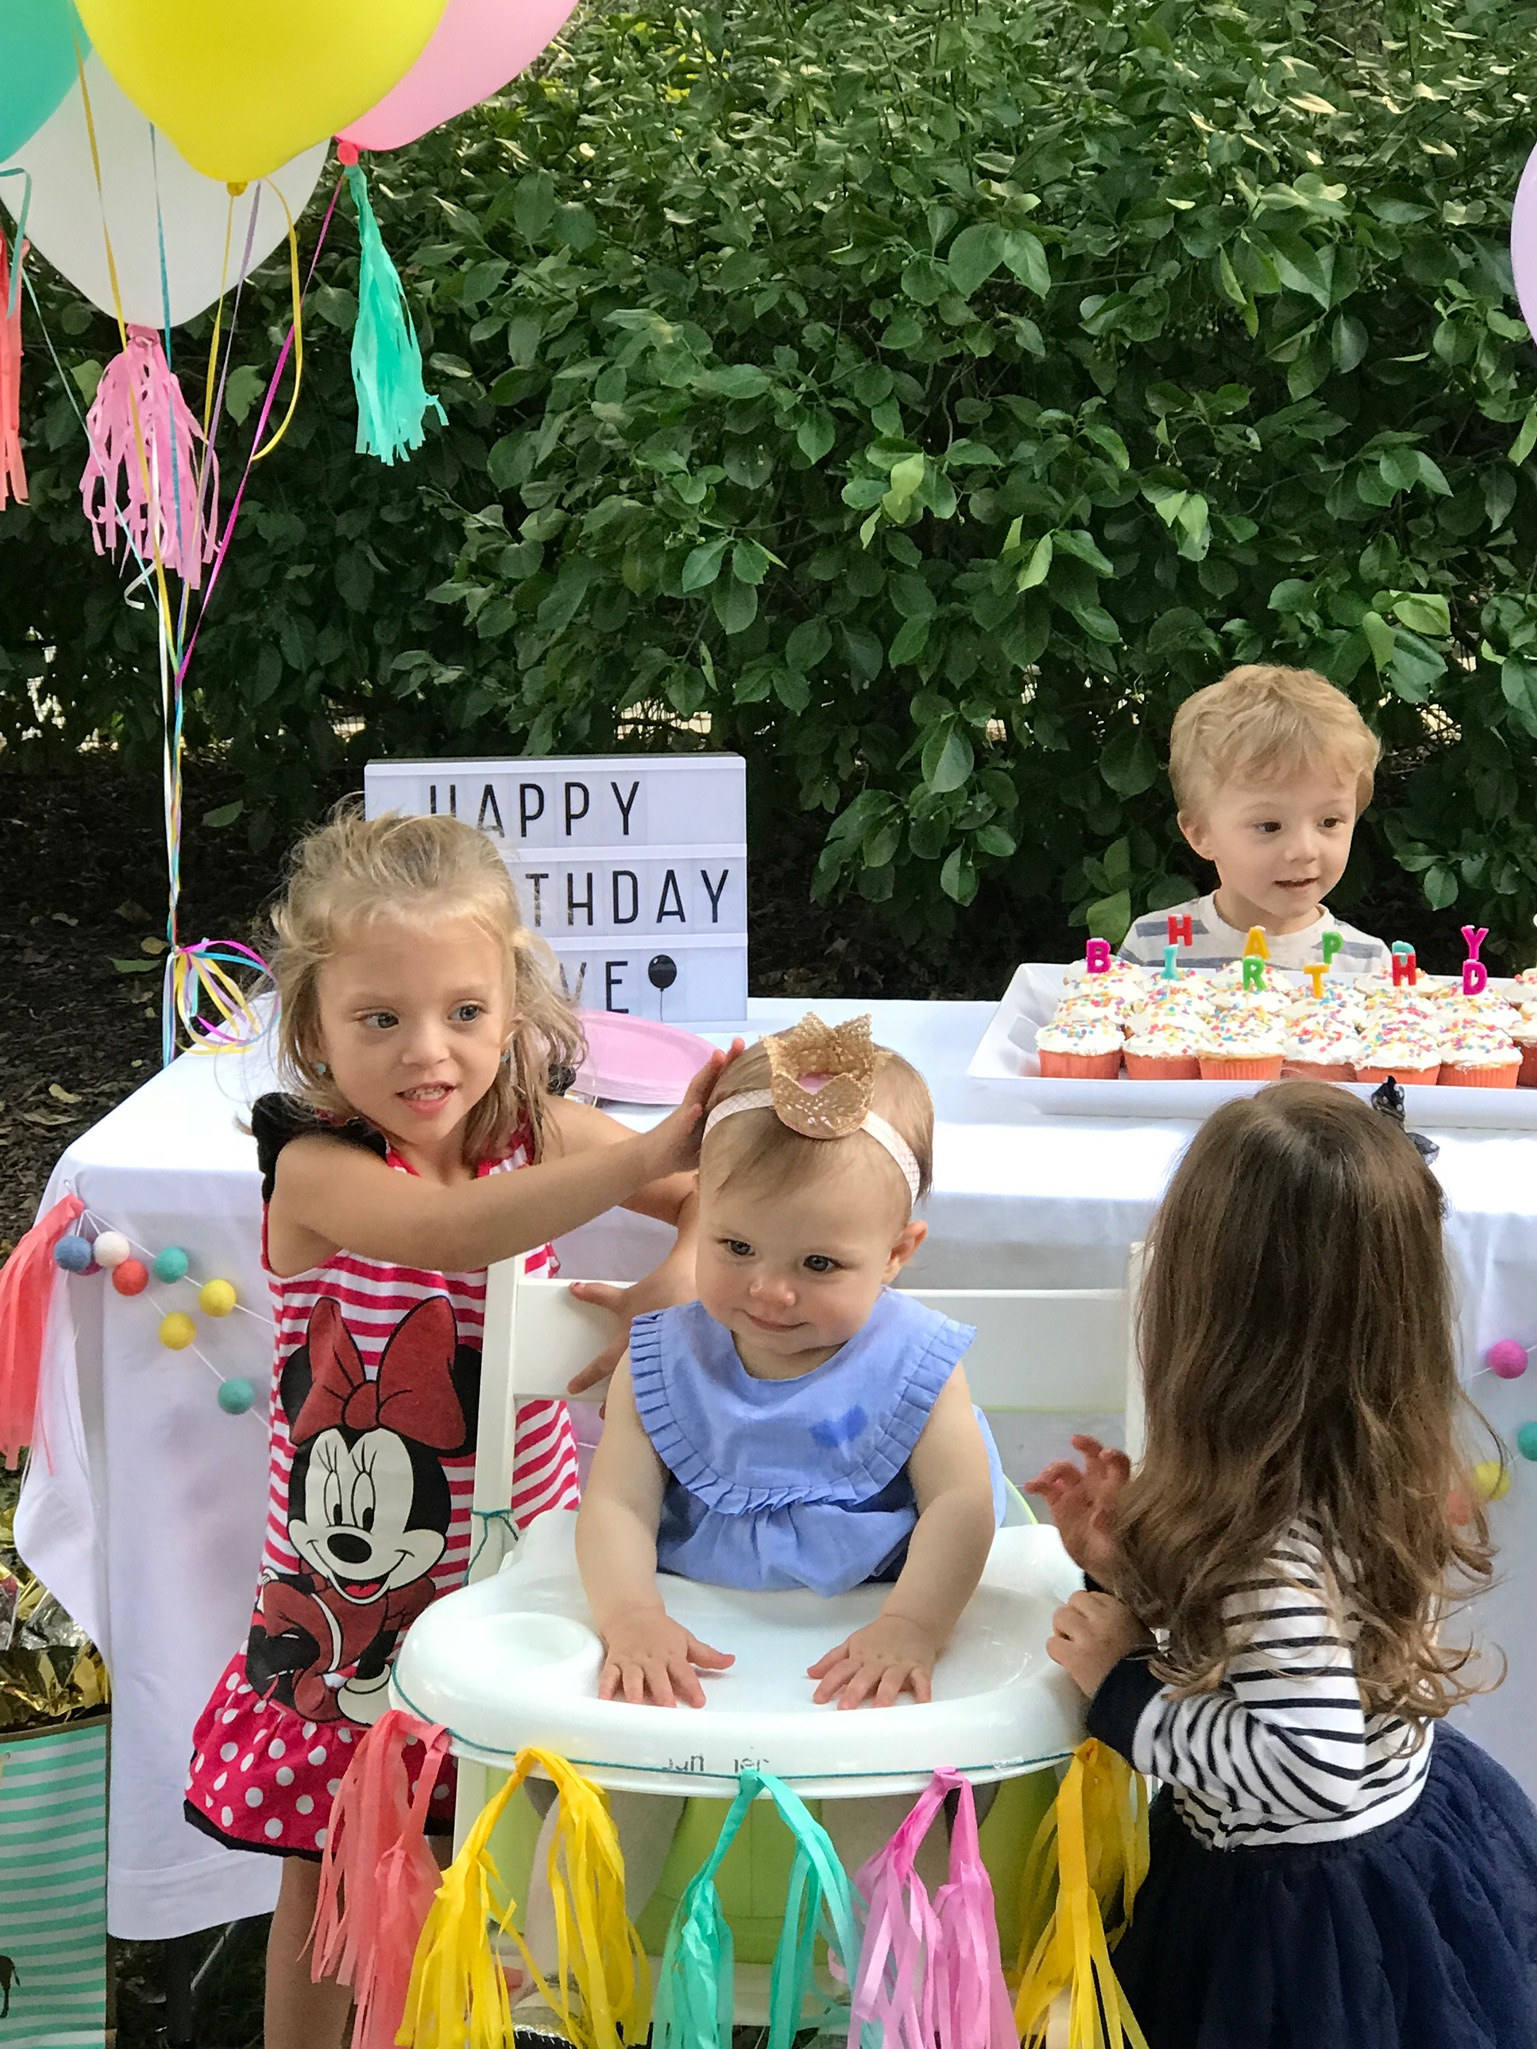 And a fun birthday party celebrating Olive turning One!!